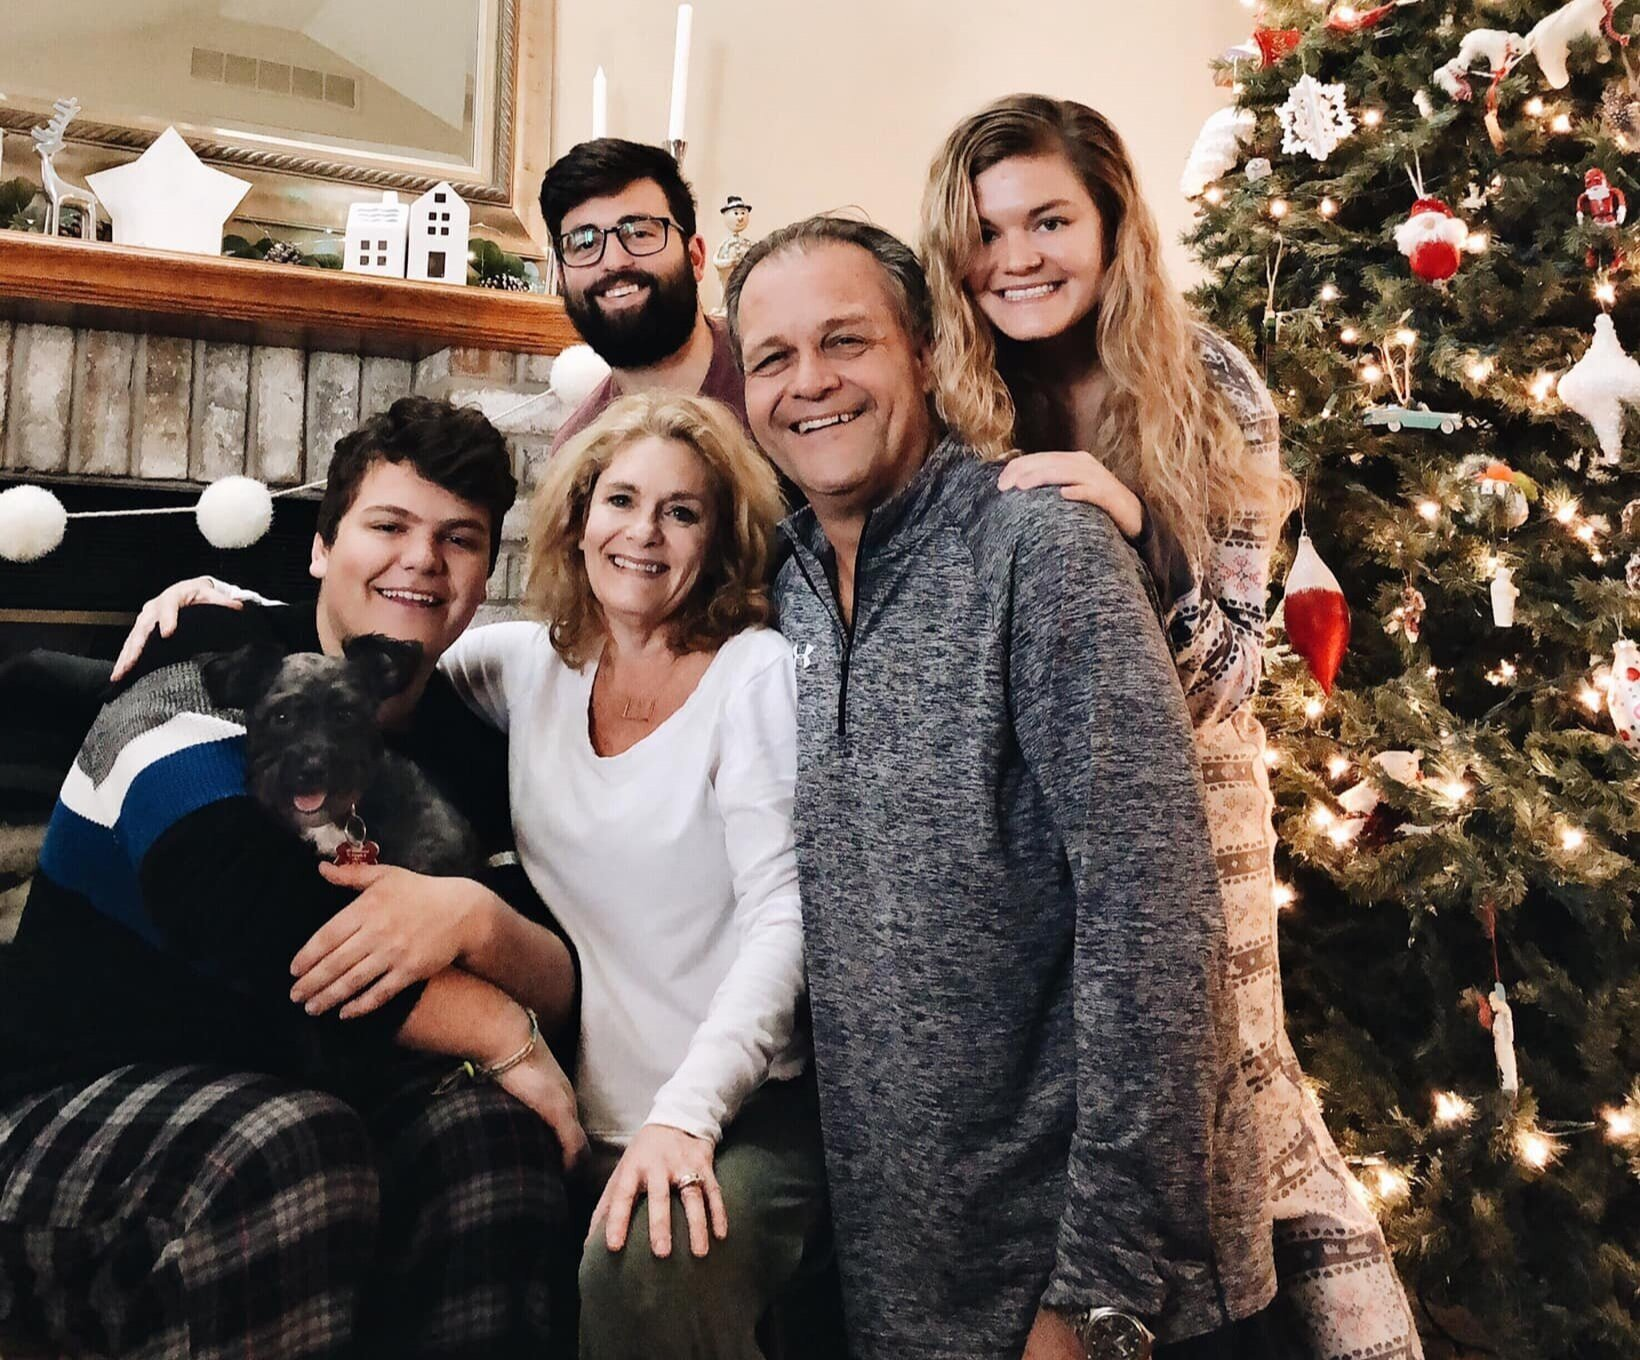 My favorite people: my family and my fiancé, Patrick.